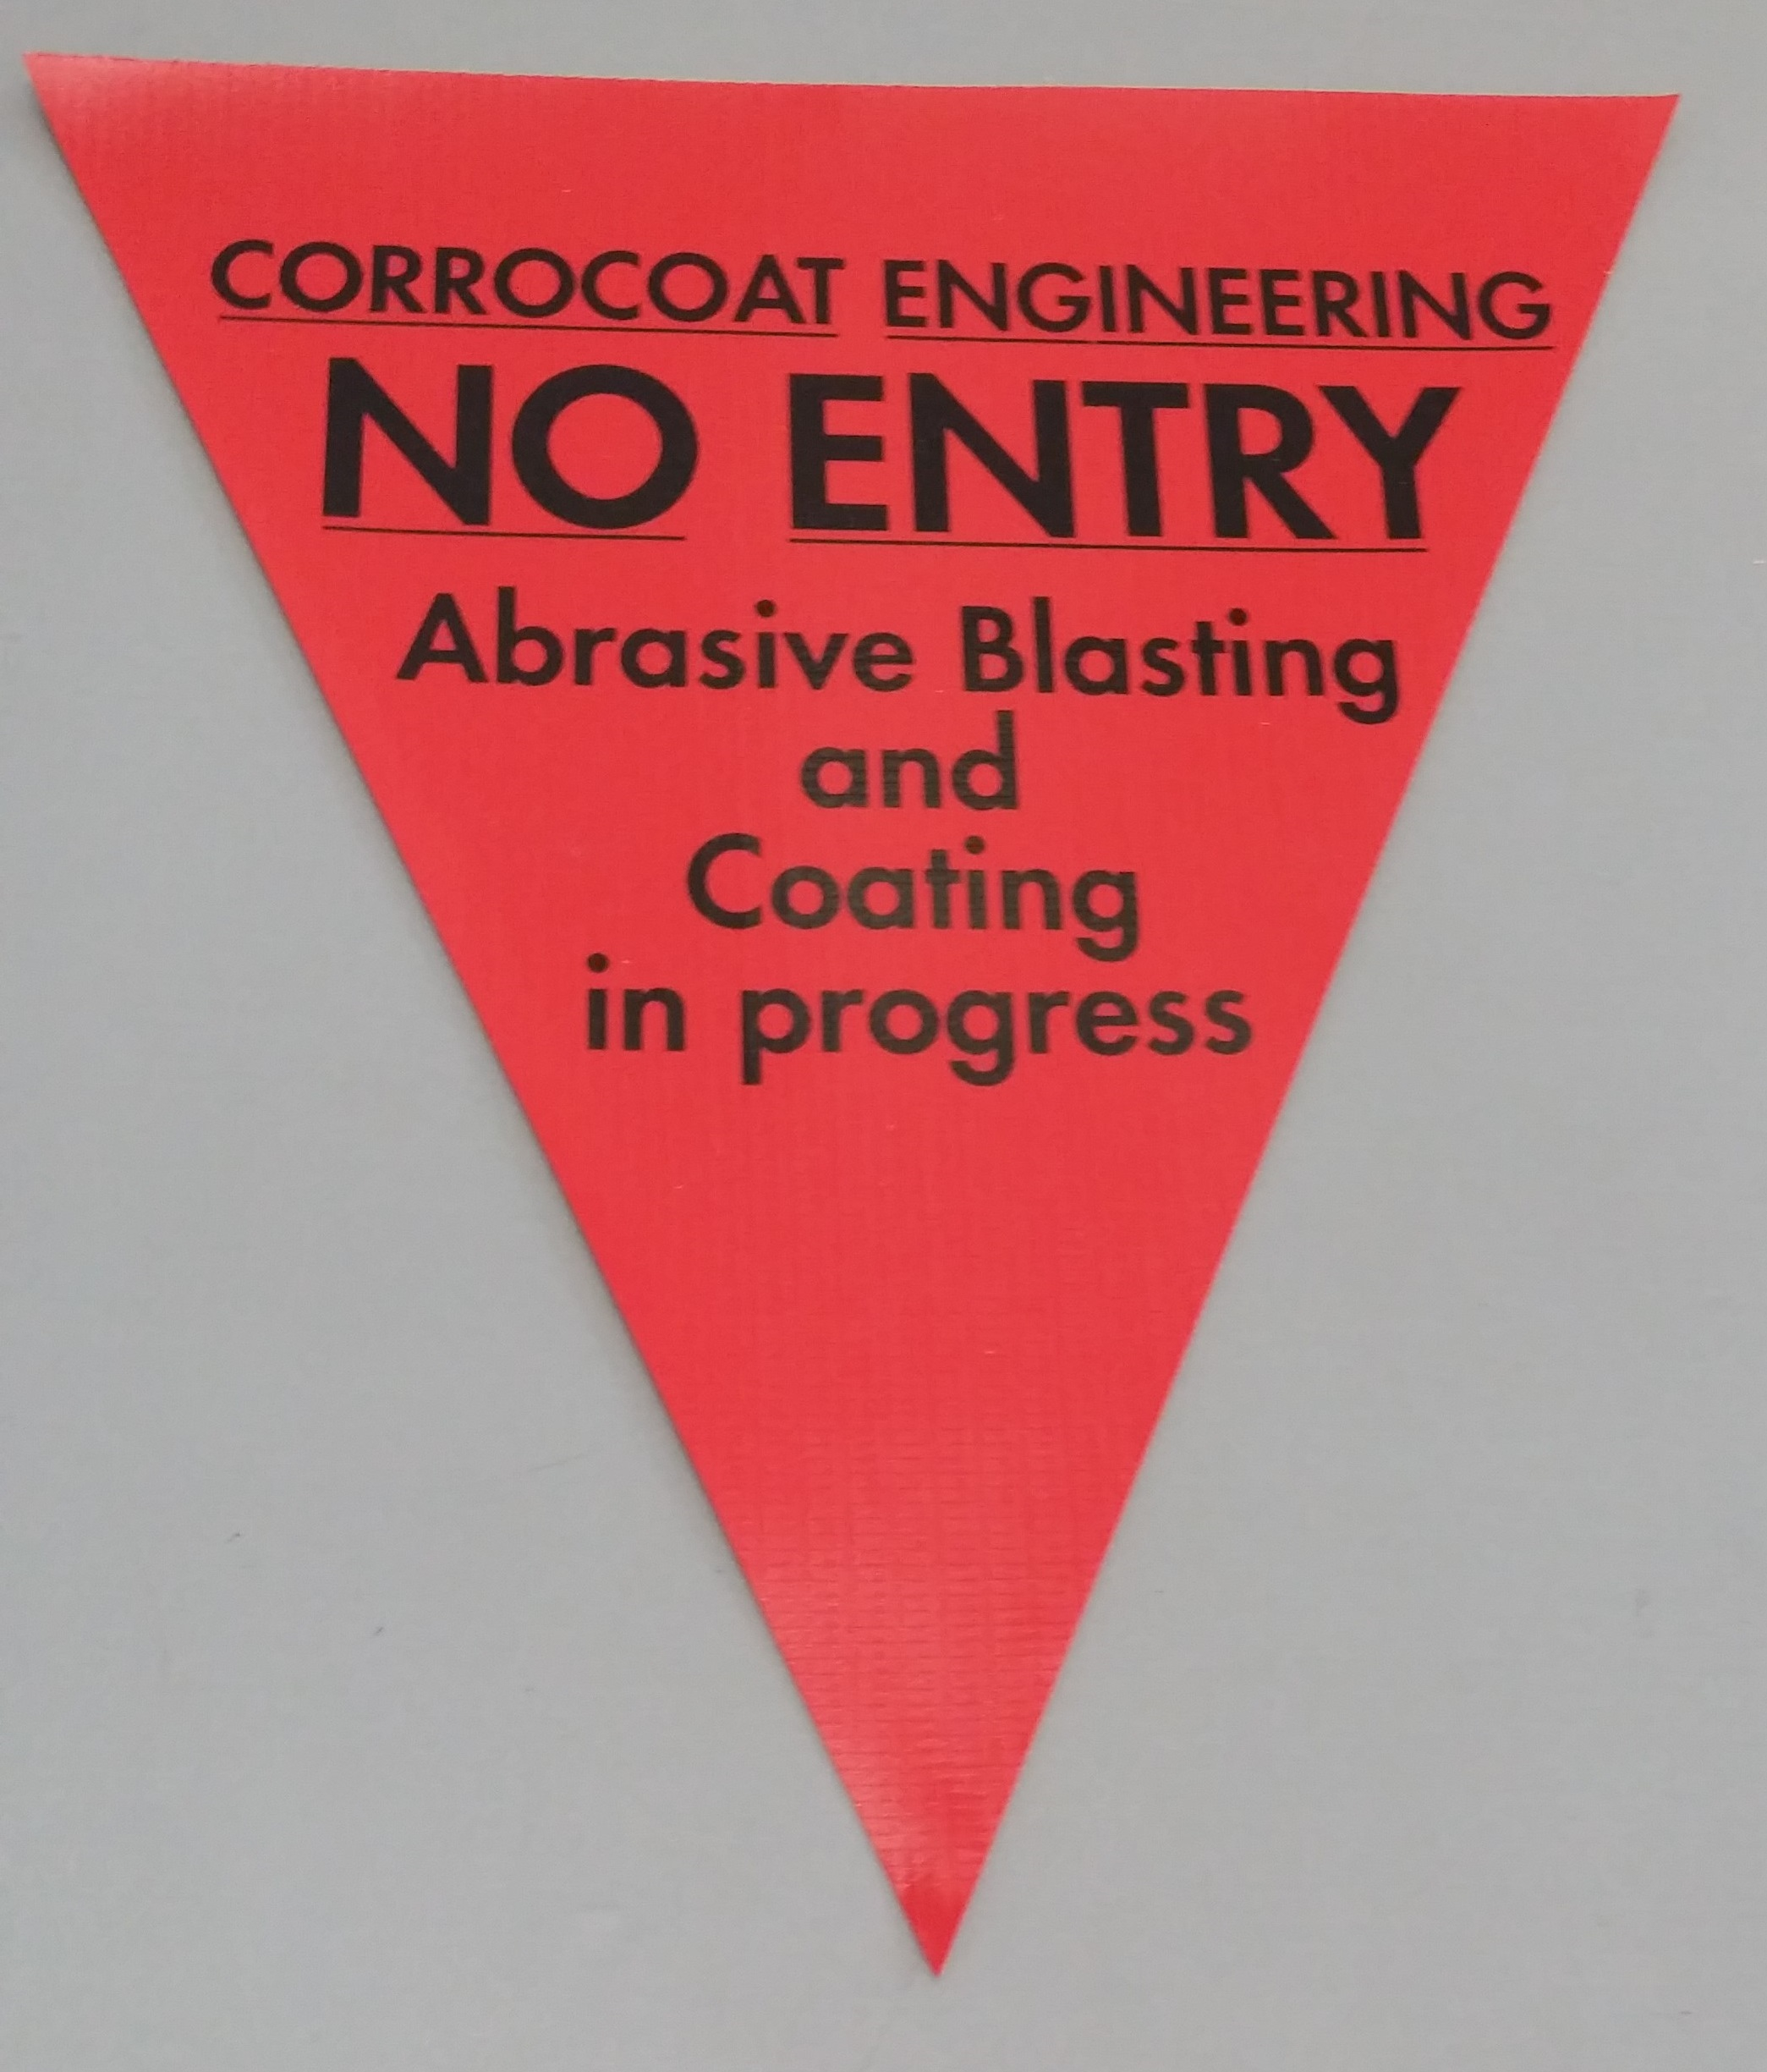 Corrocoat Engineering No Entry (red)